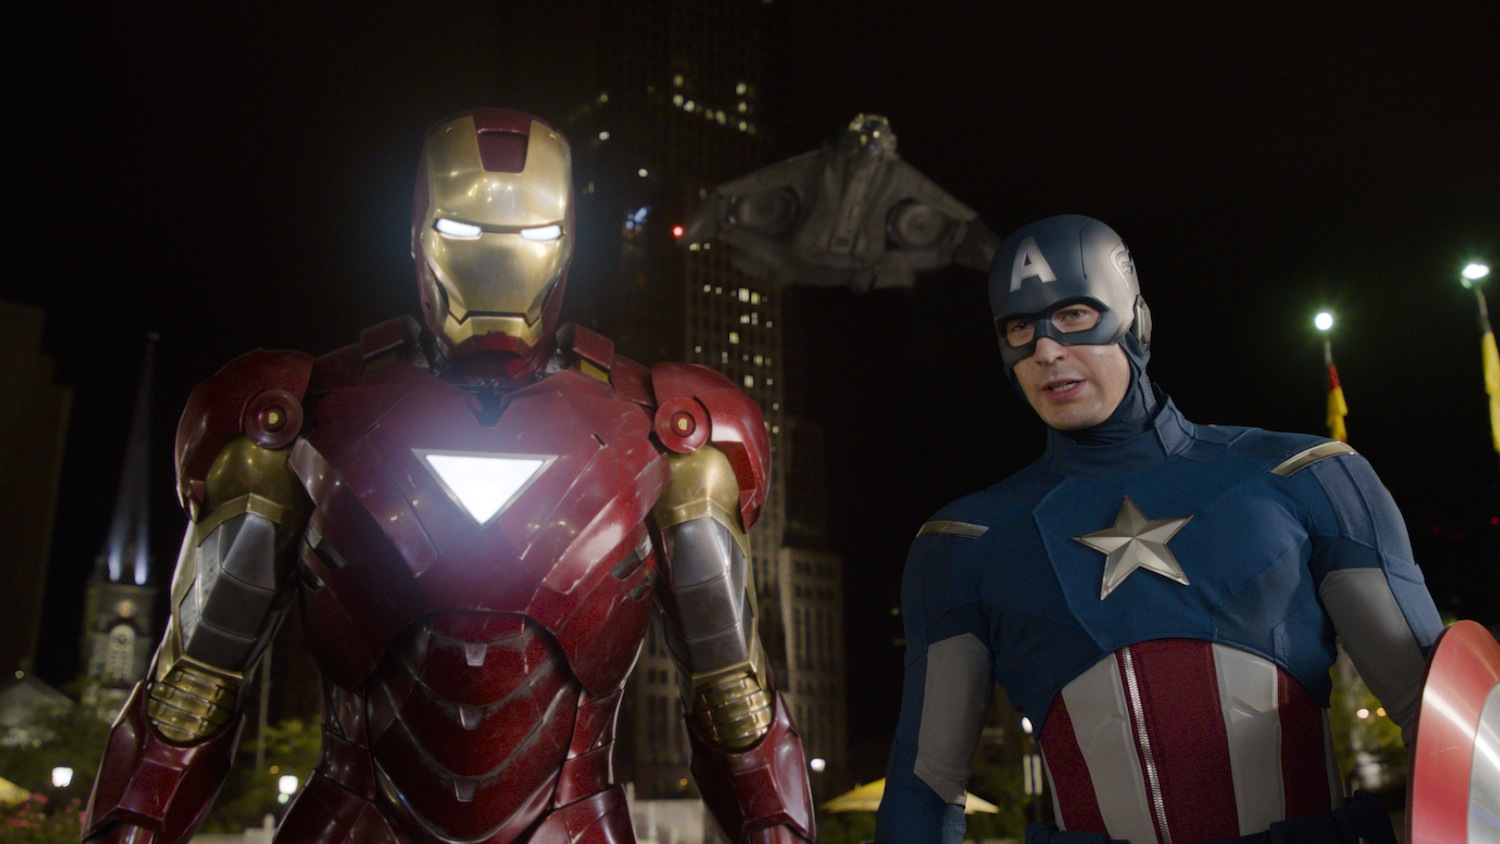 `Marvel's The Avengers`: Iron Man (Robert Downey Jr.), left, and Captain America (Chris Evans) with the Quinjet in background. (photo: Film Frame ©2011 MVLFFLLC. TM and ©2011 Marvel. All Rights Reserved.)